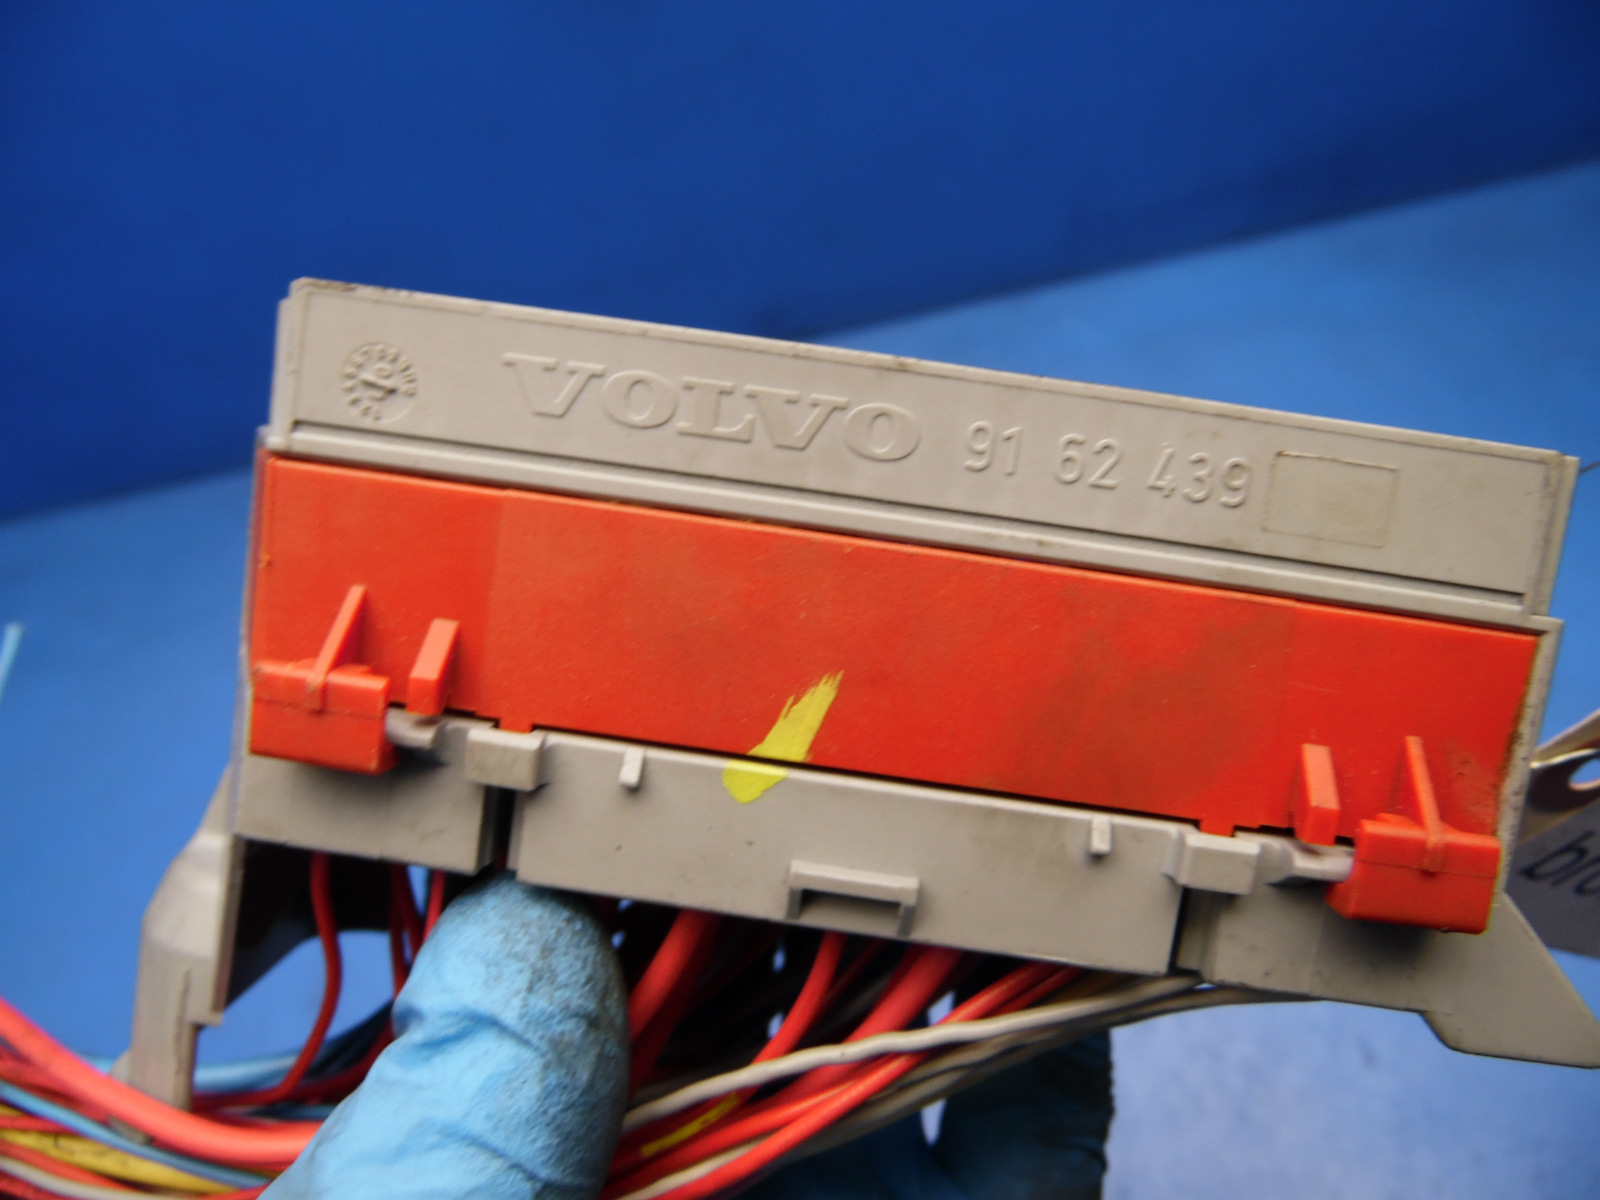 hight resolution of 99 03 volvo s80 oem front left side fuse box w fuses relays 91 62 439 flaw